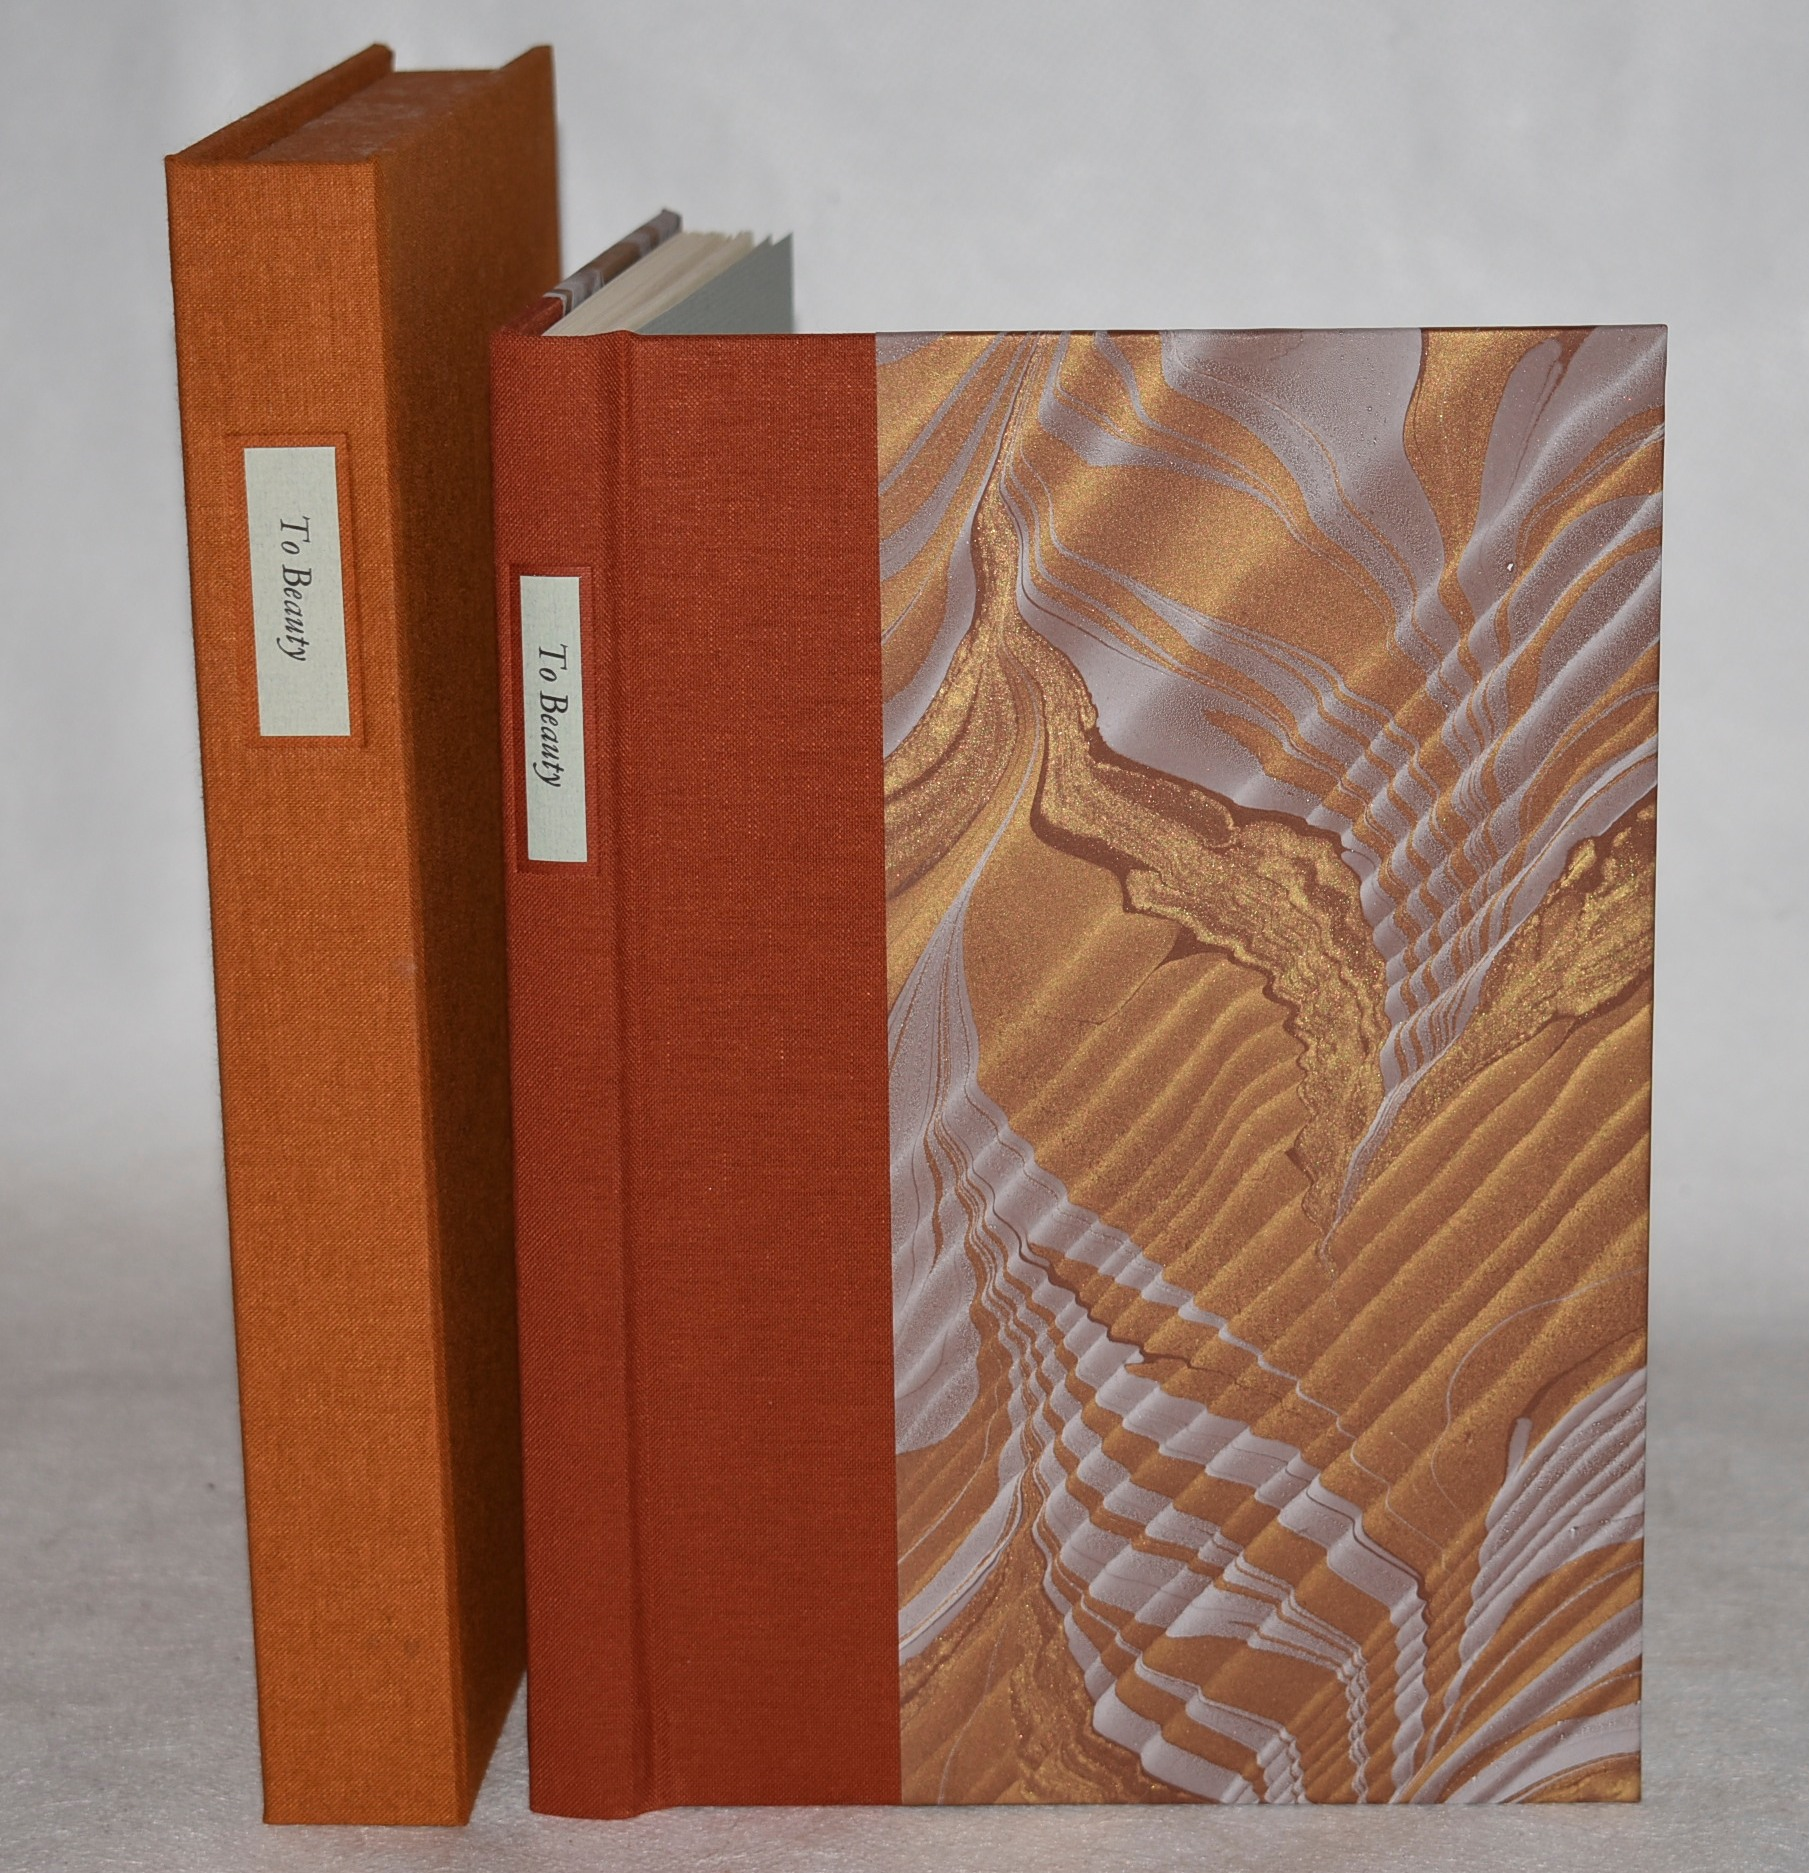 Image for To Beauty. John Buckland Wright's work with Joseph Ishill of the Oriole Press. Limited Edition in Fine Binding.